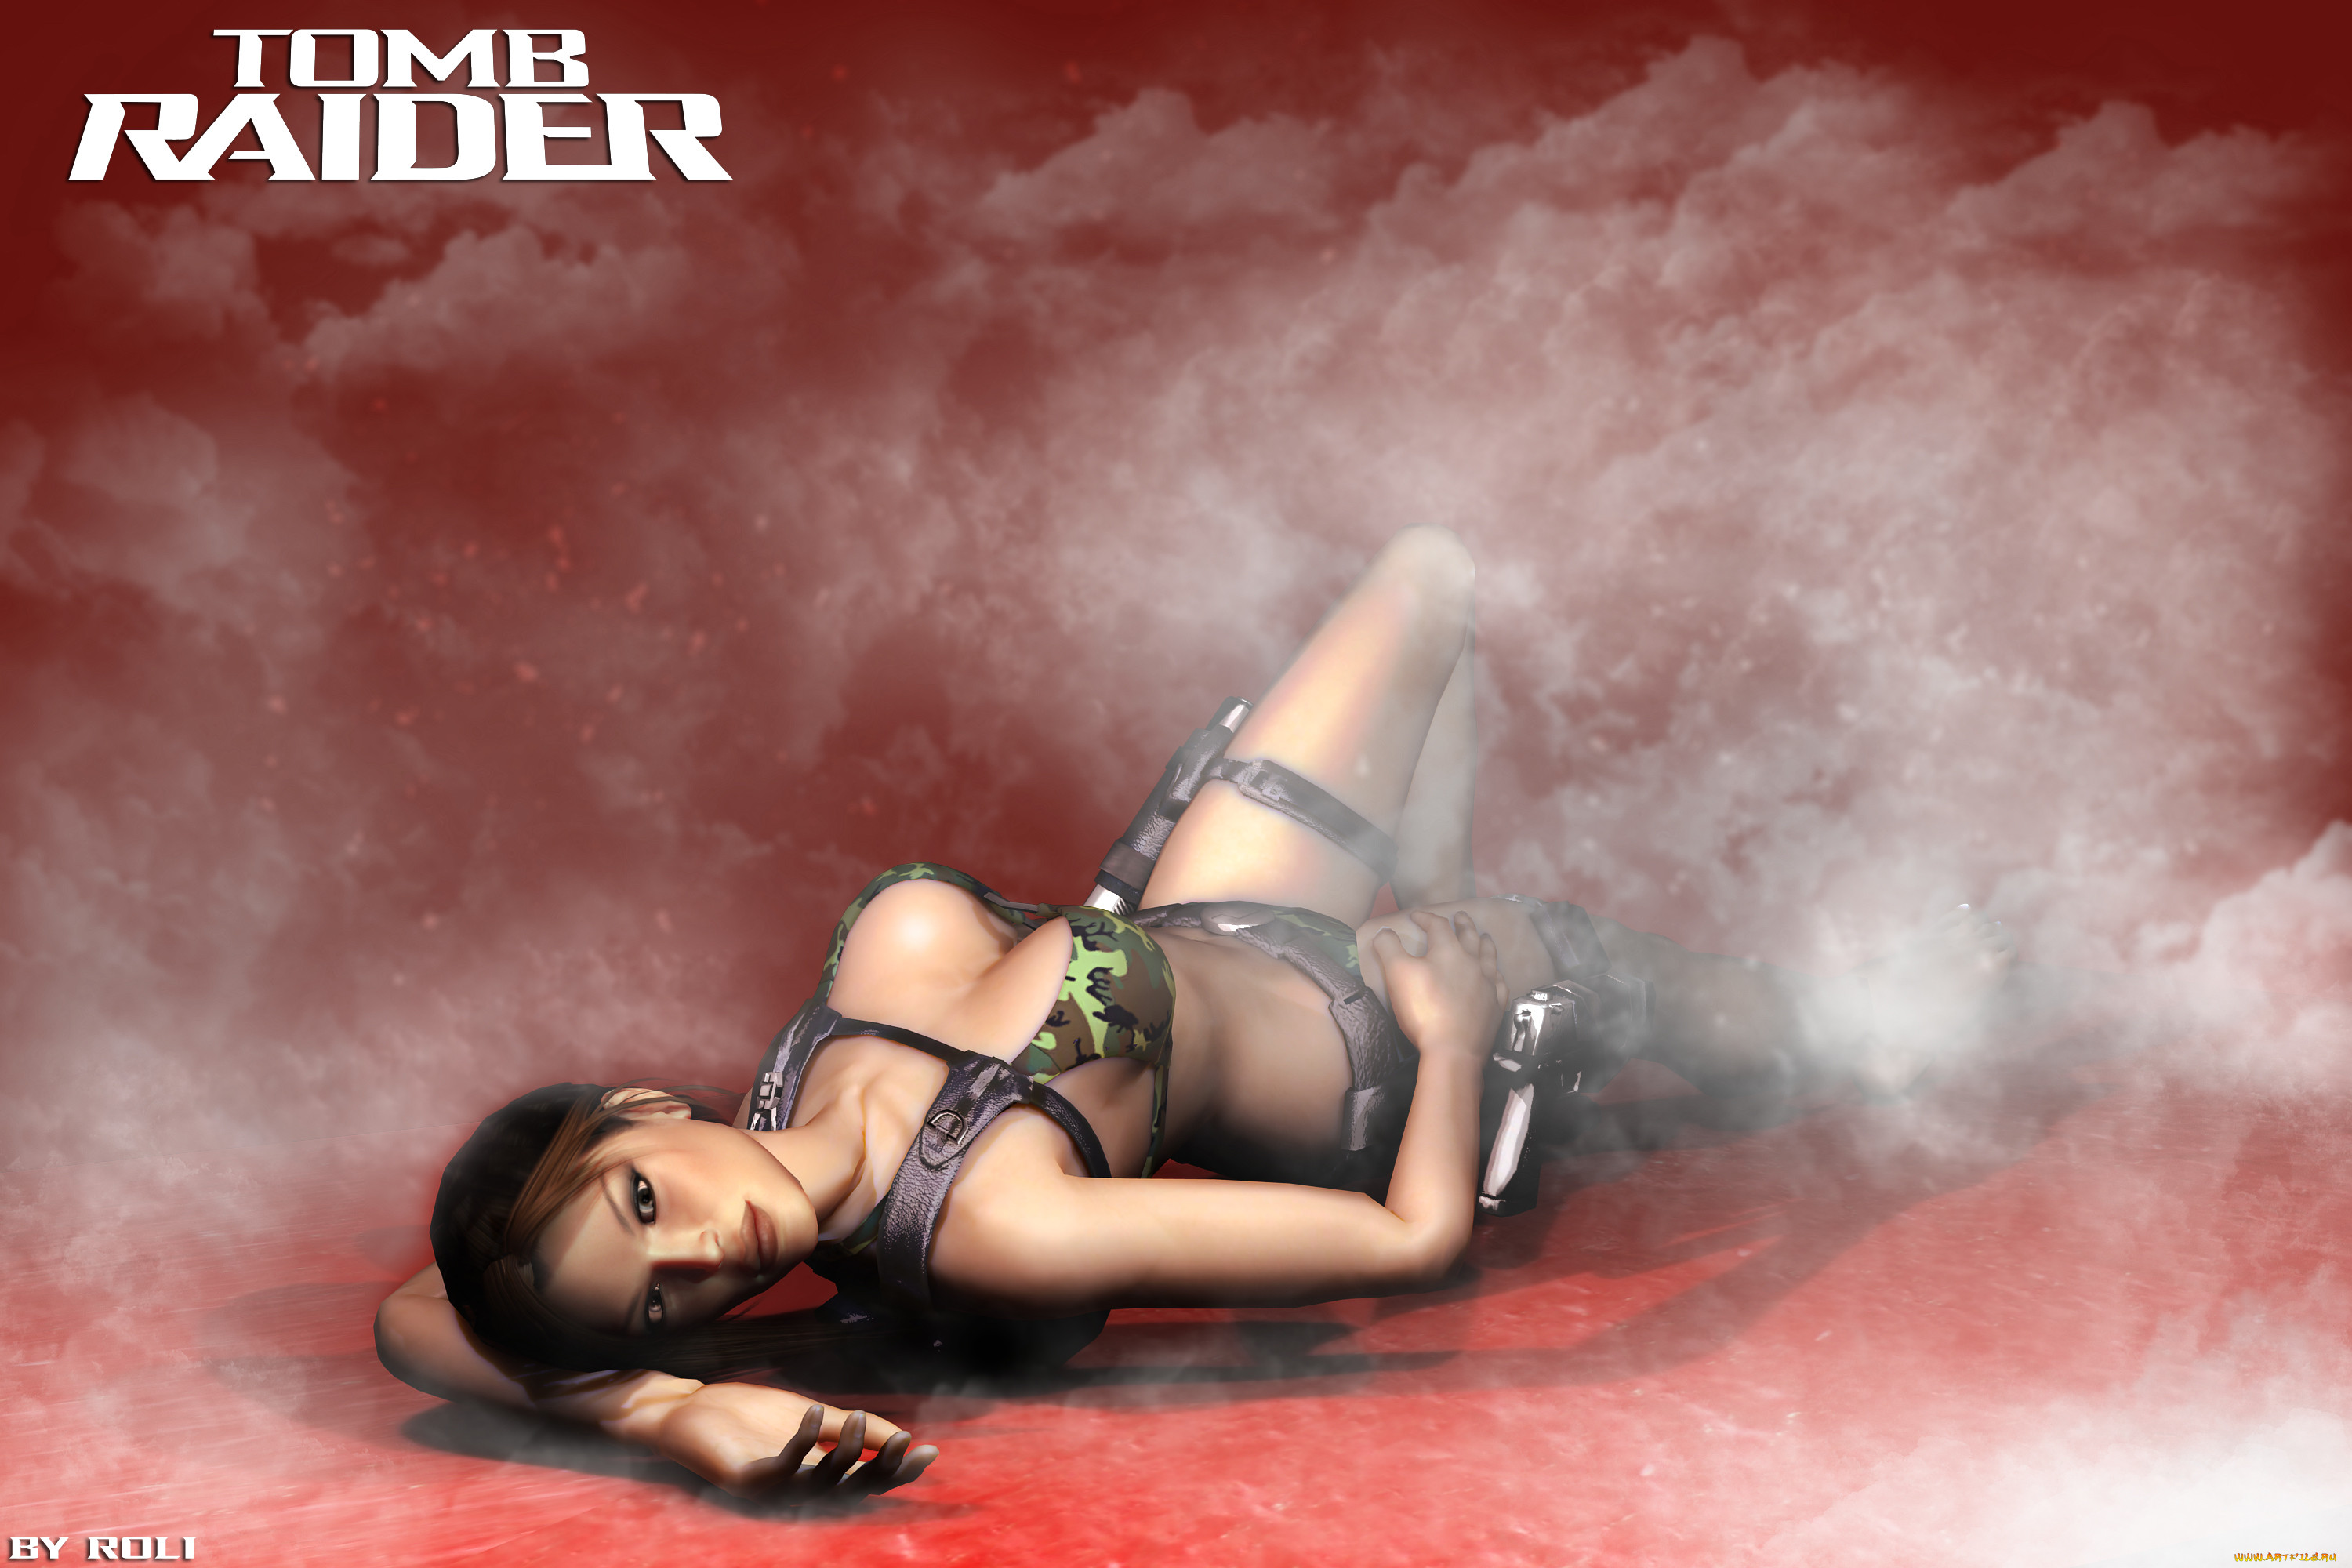 Tomb raider mastrubating video xxx scenes